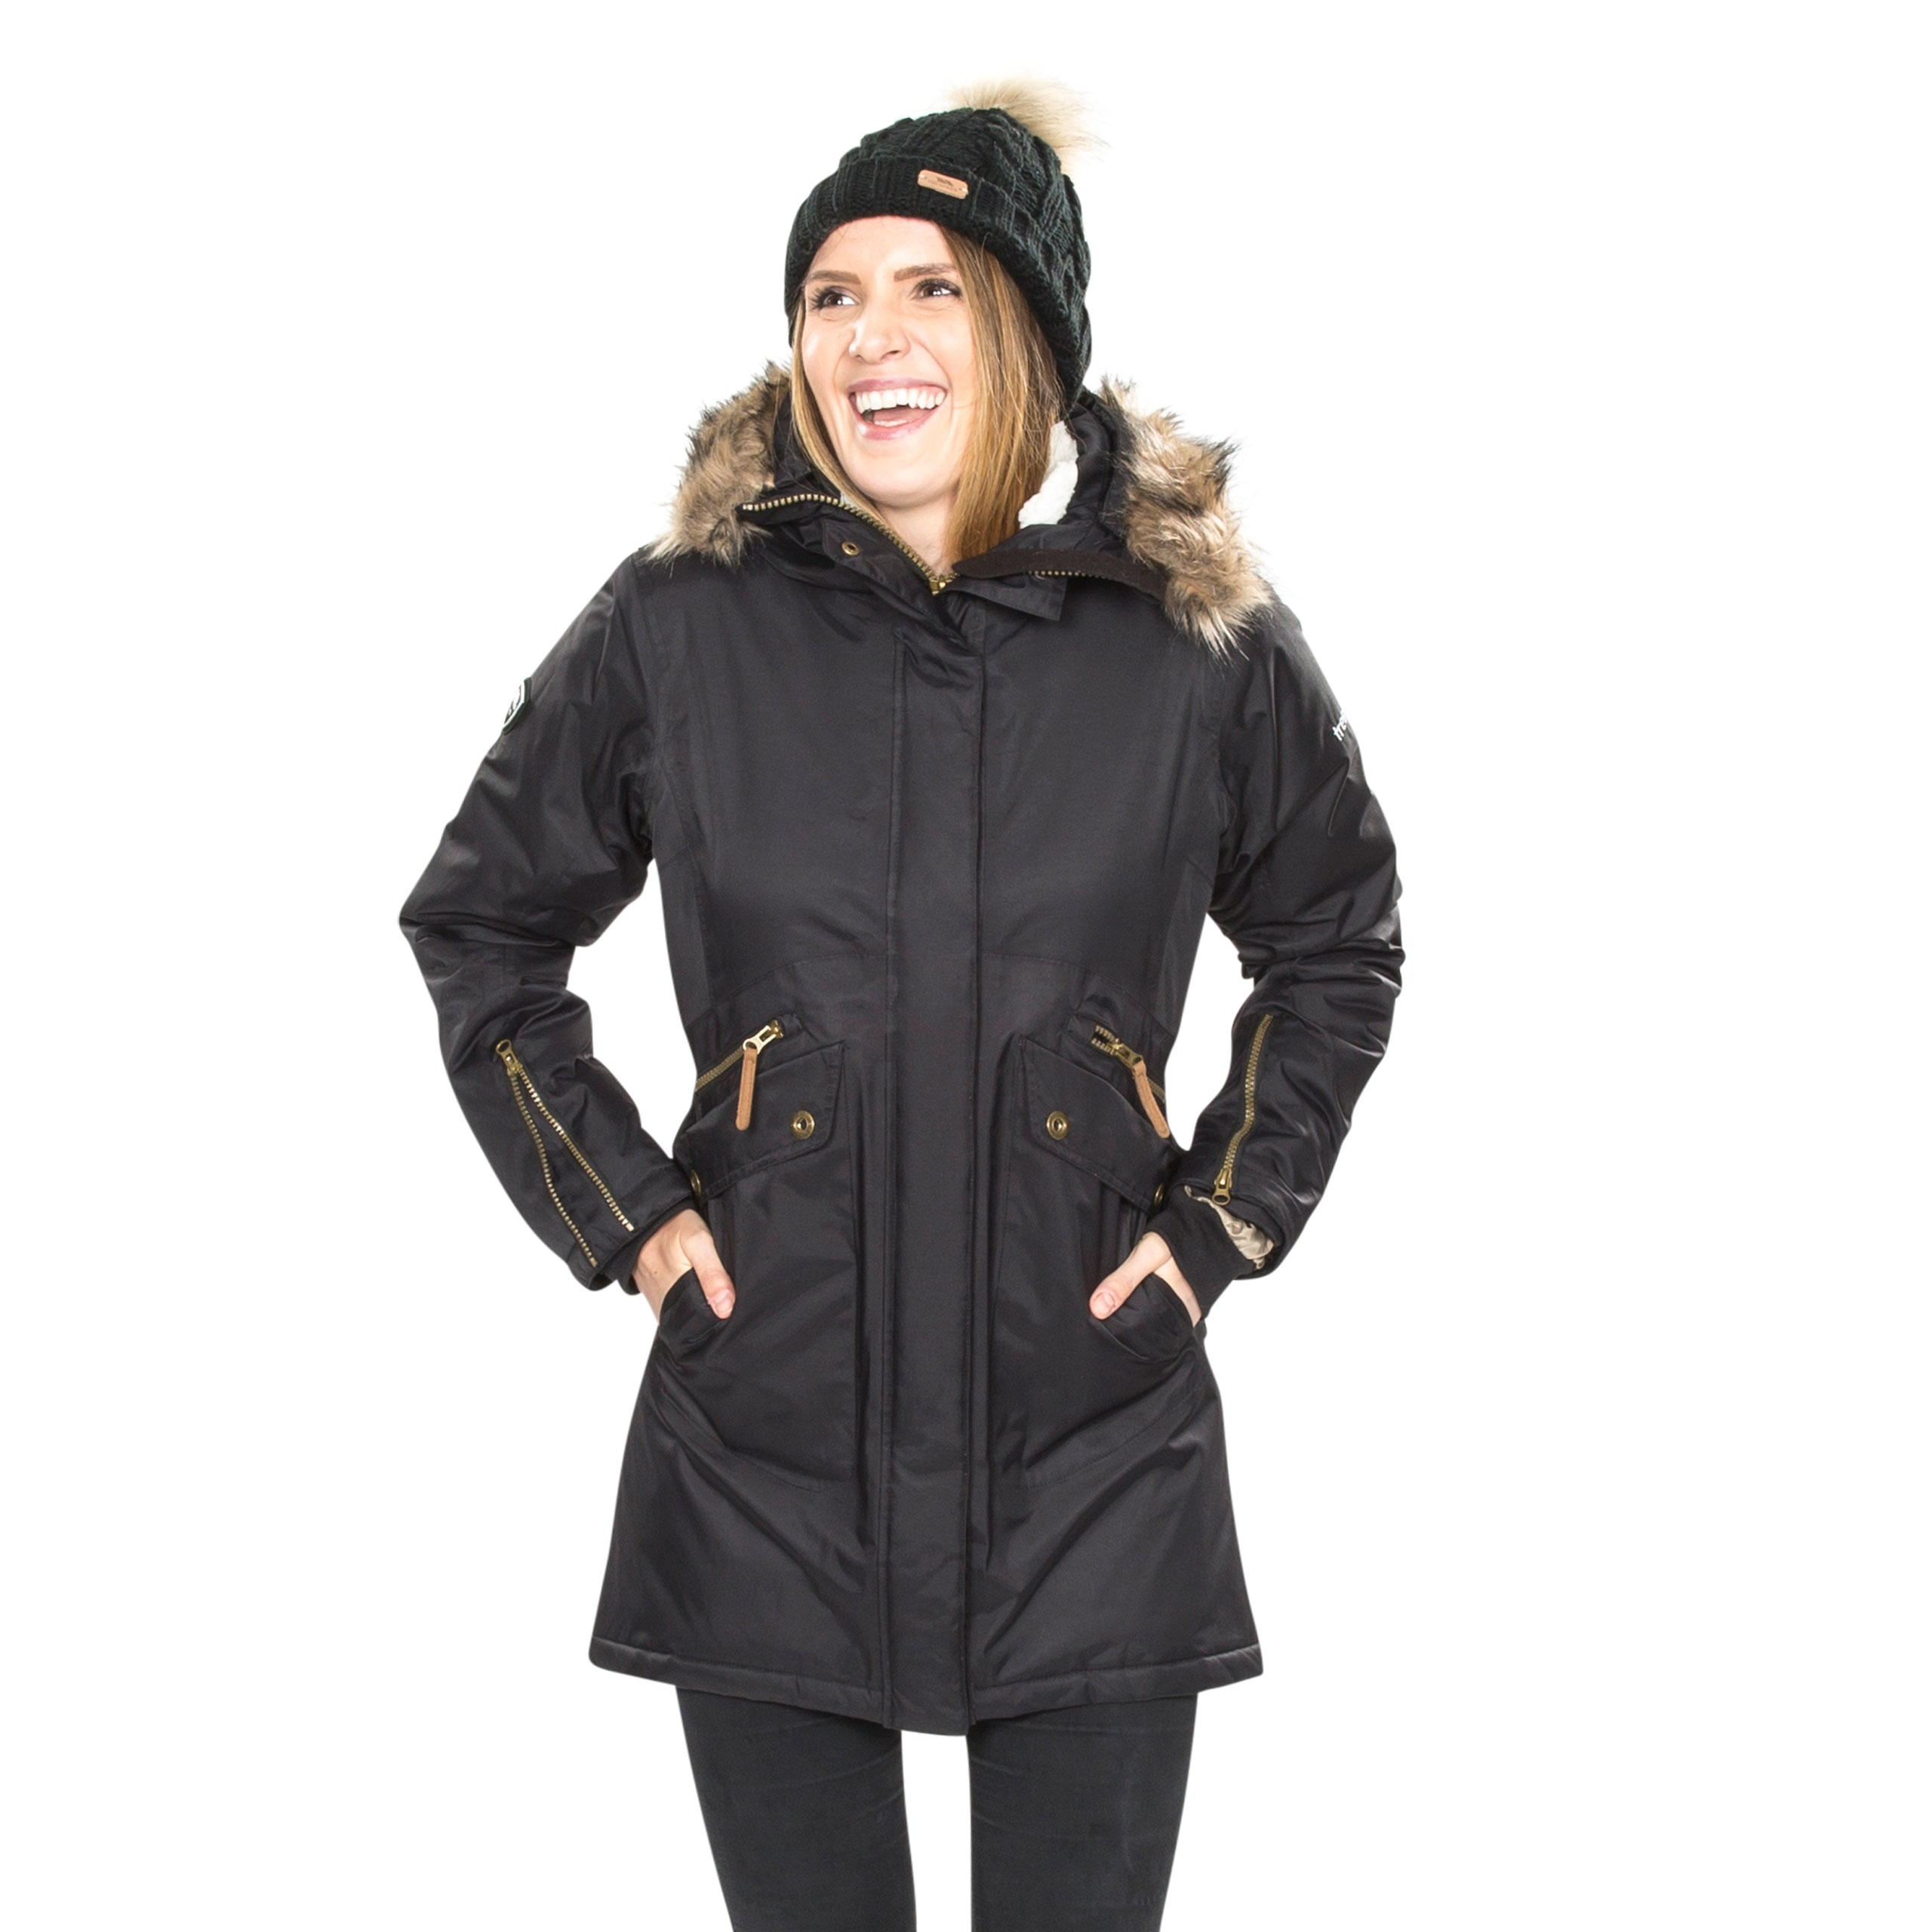 Trespass Eternally Womens Waterproof Parka Jacket